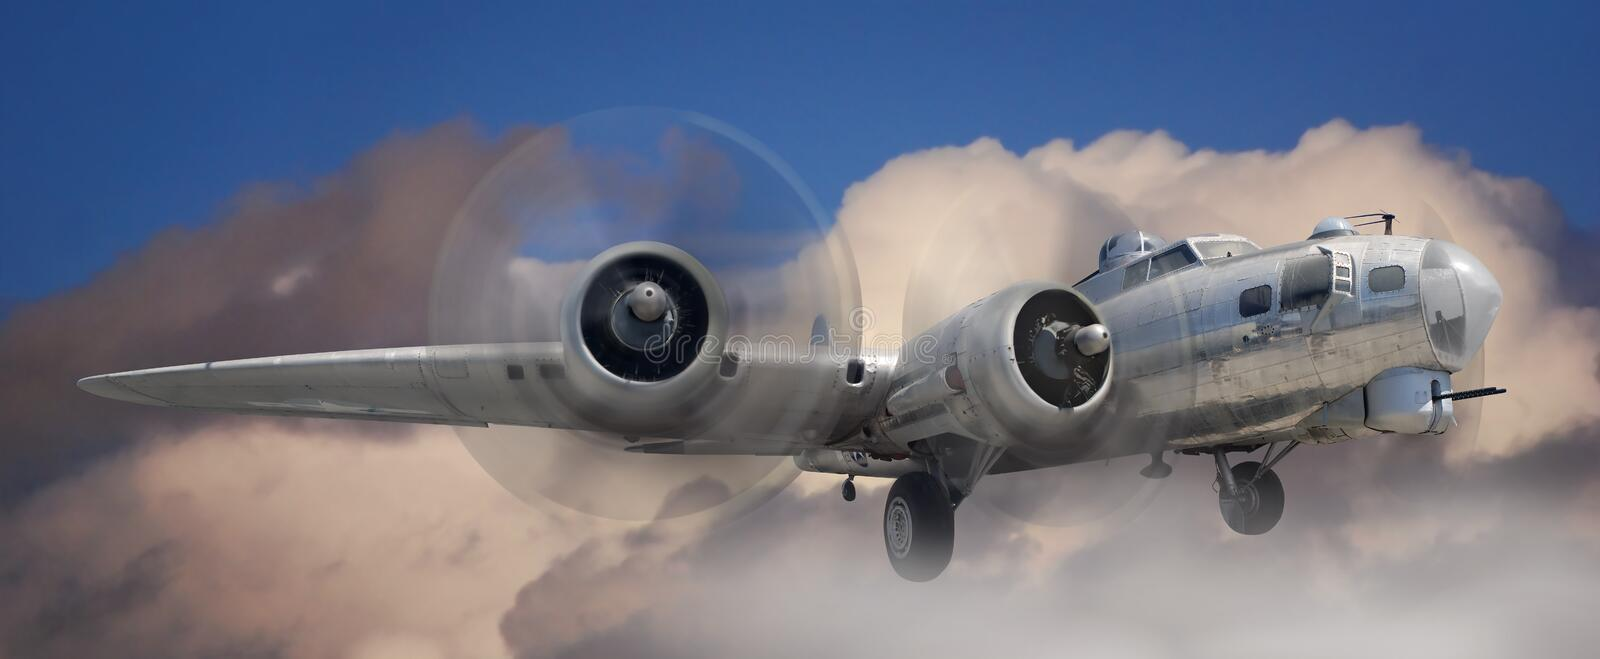 B17 Stratofortress stock photography